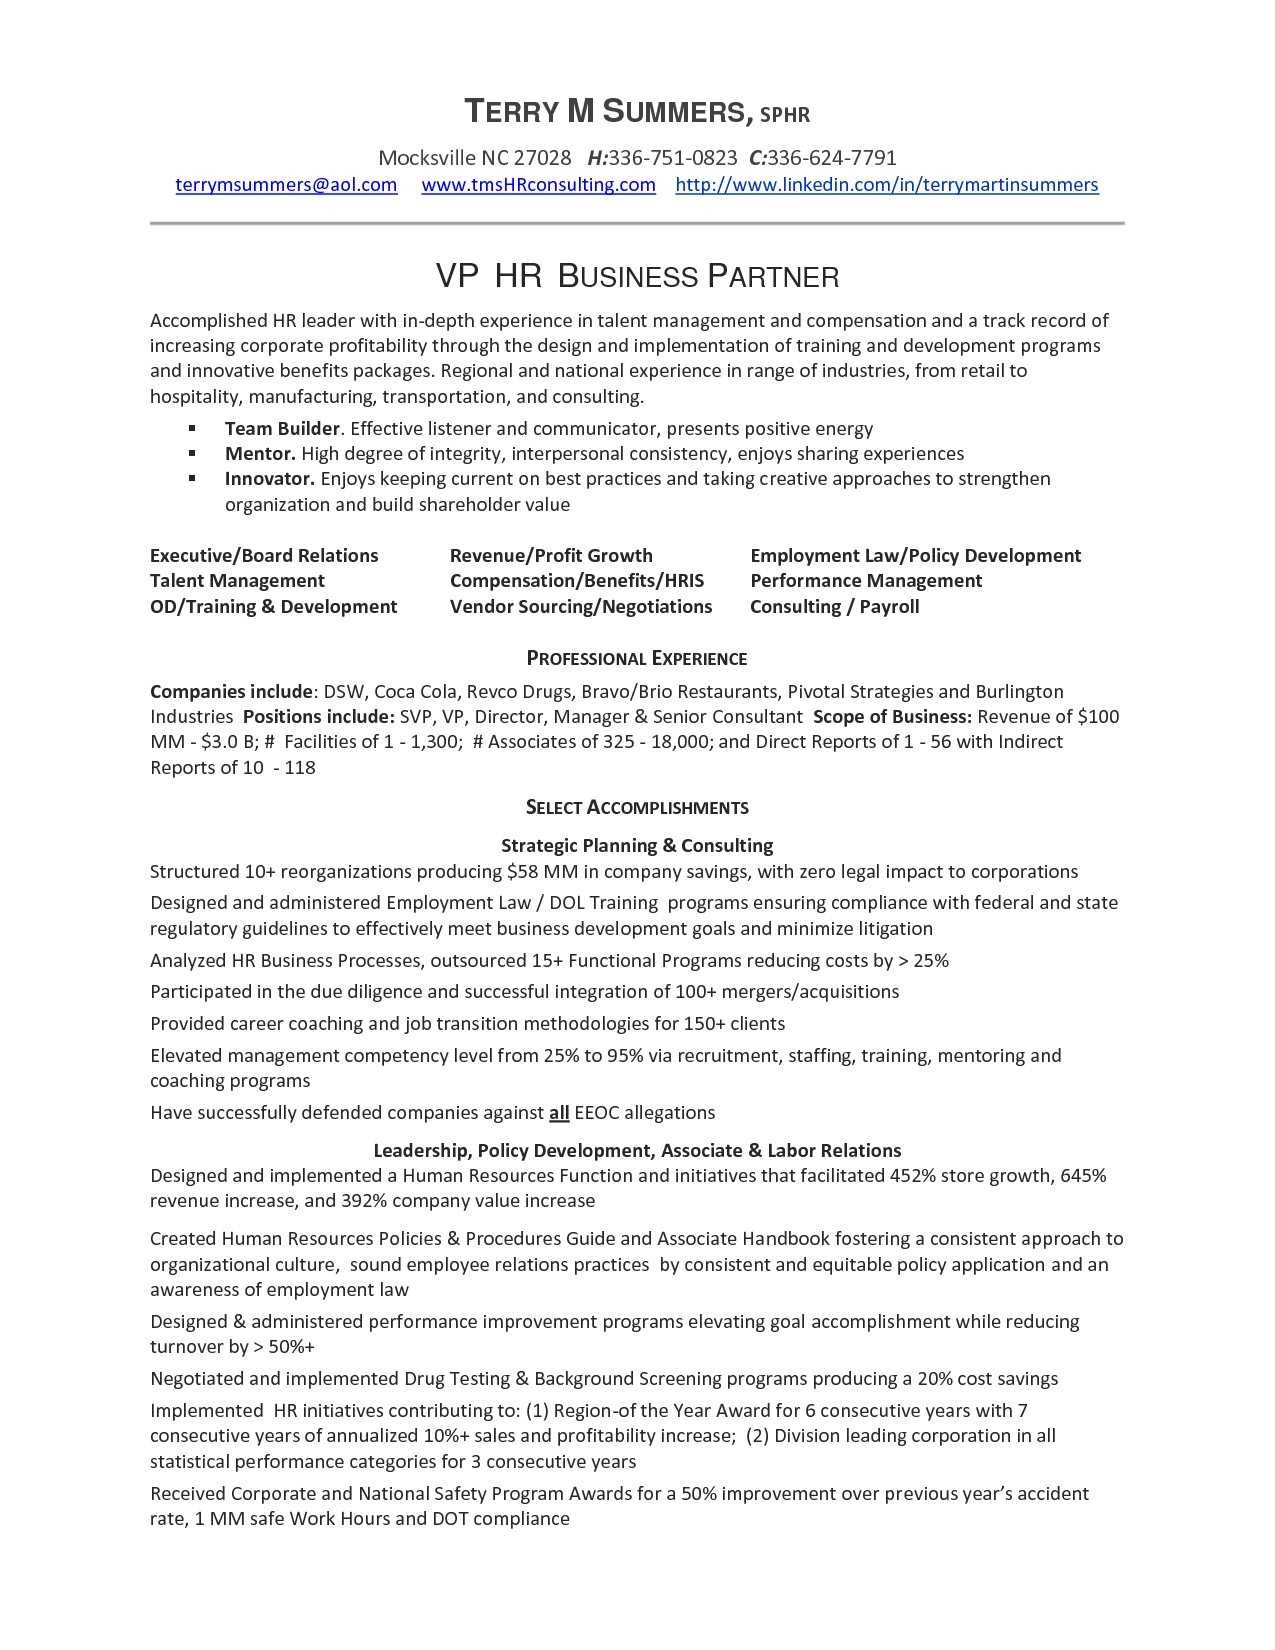 Letter Of Intent Template Free - Business Letter Intent Template Best Sample Business